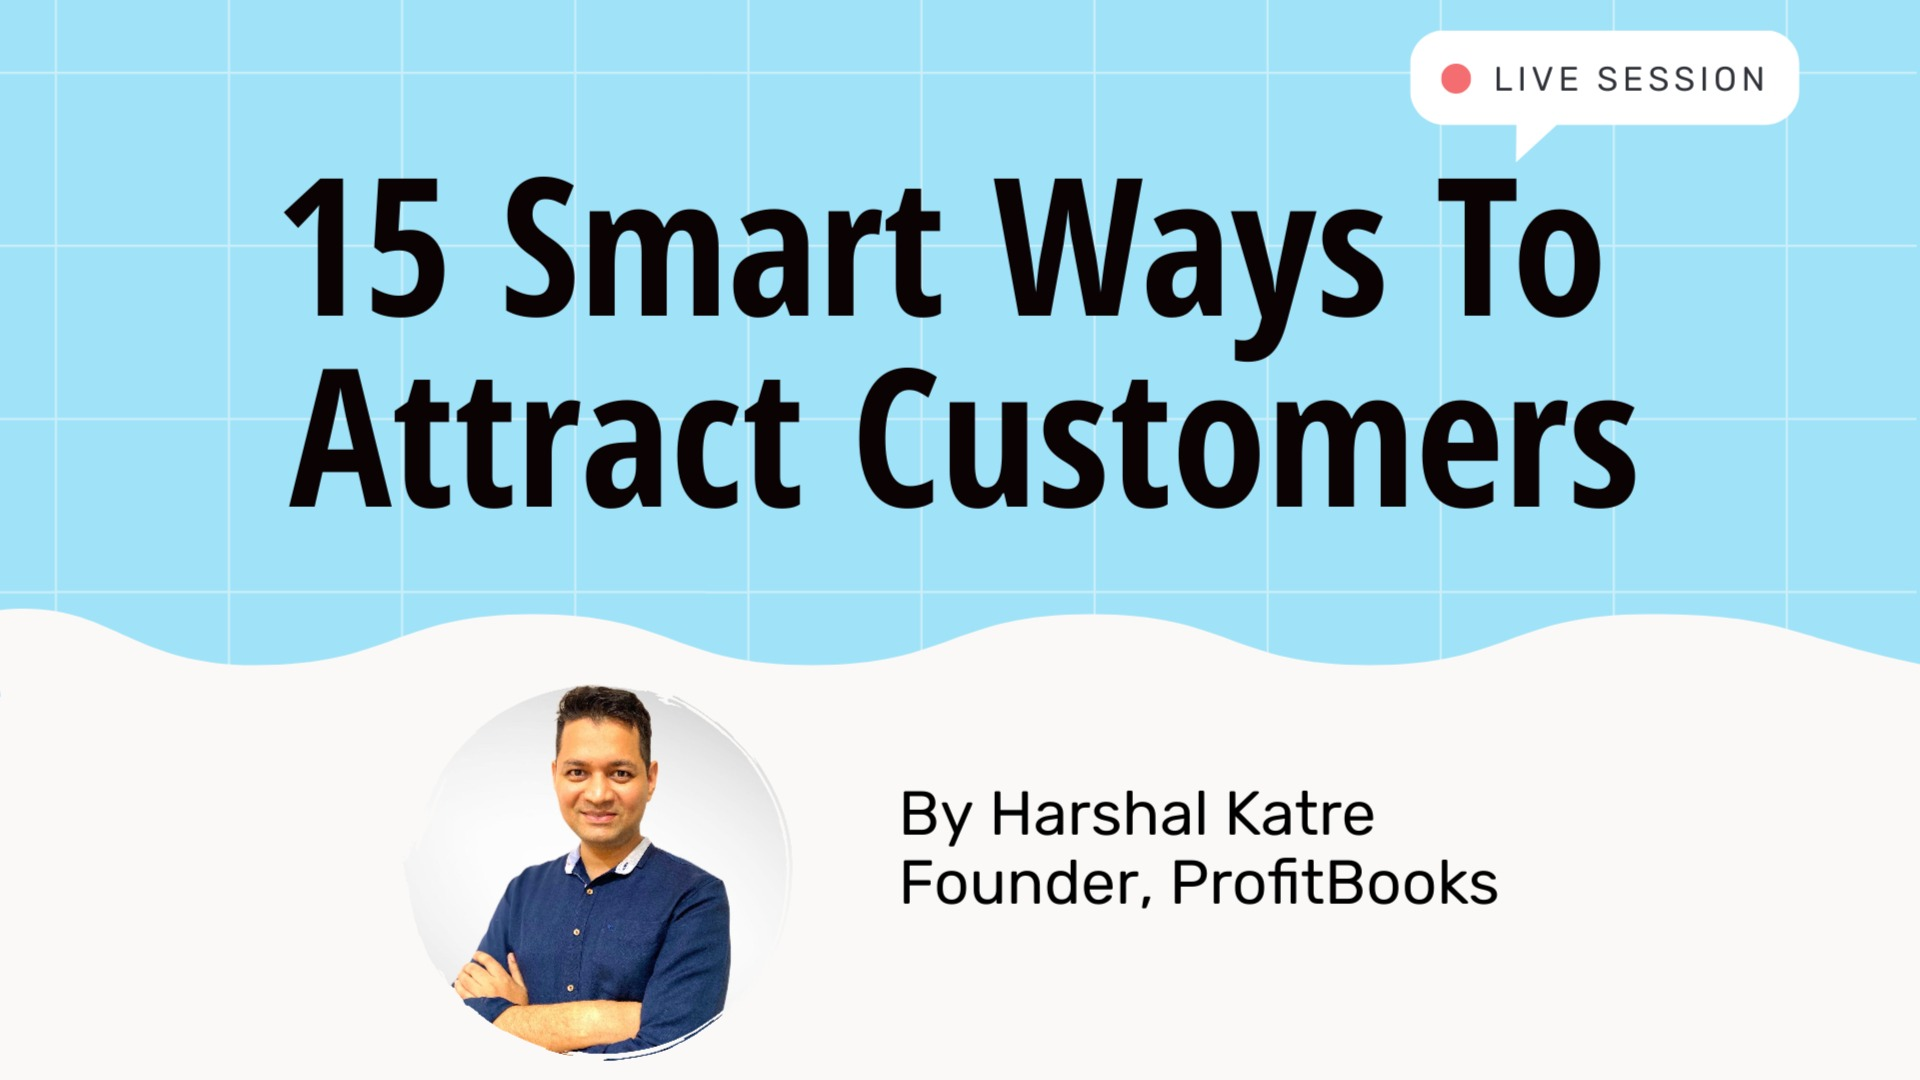 15 Smart Ways To Attract Customers In Your Business